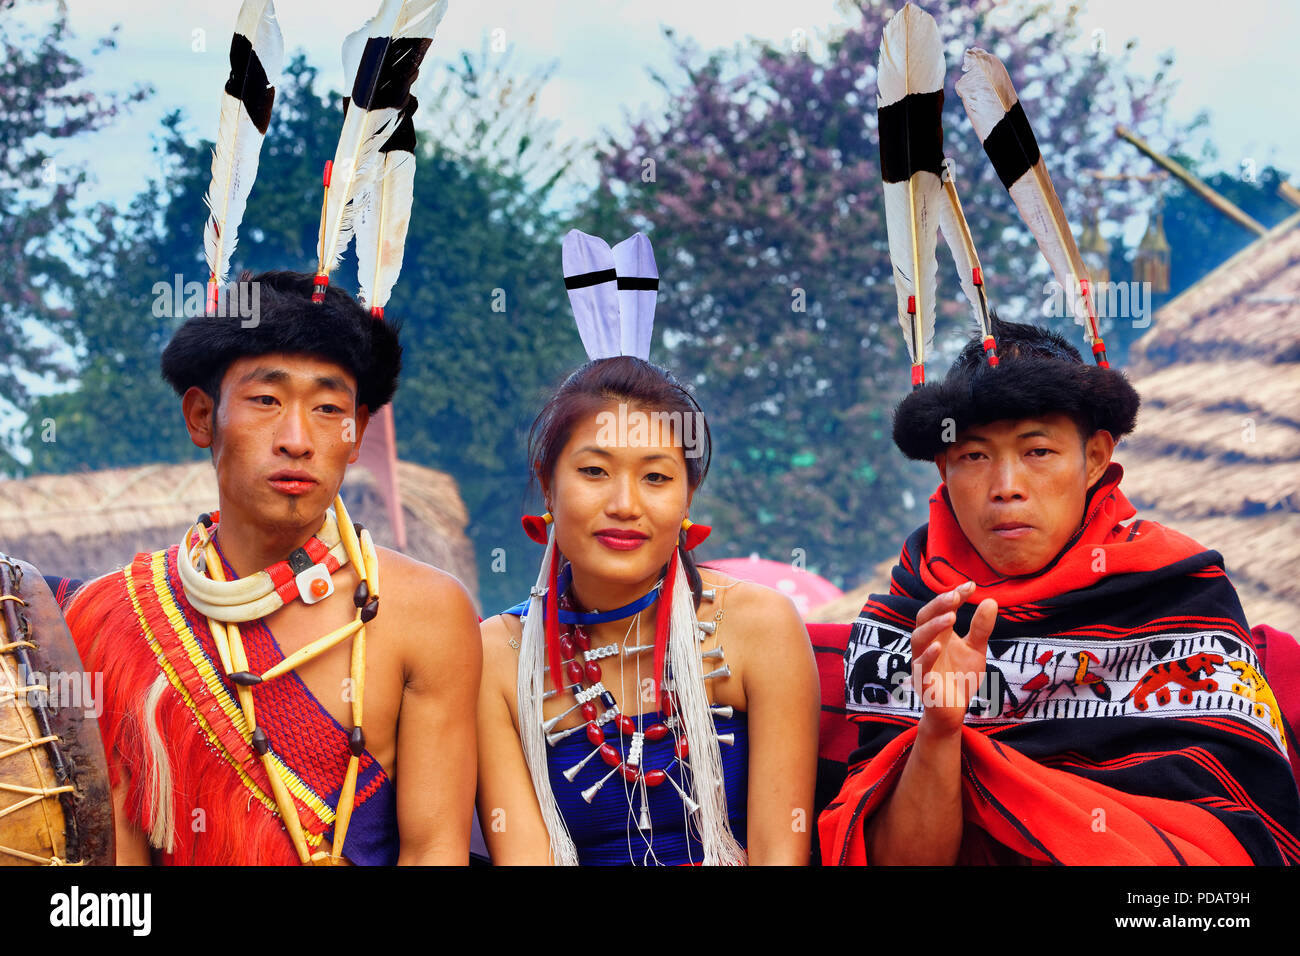 Group of Naga tribal people in traditional clothing, Kisima